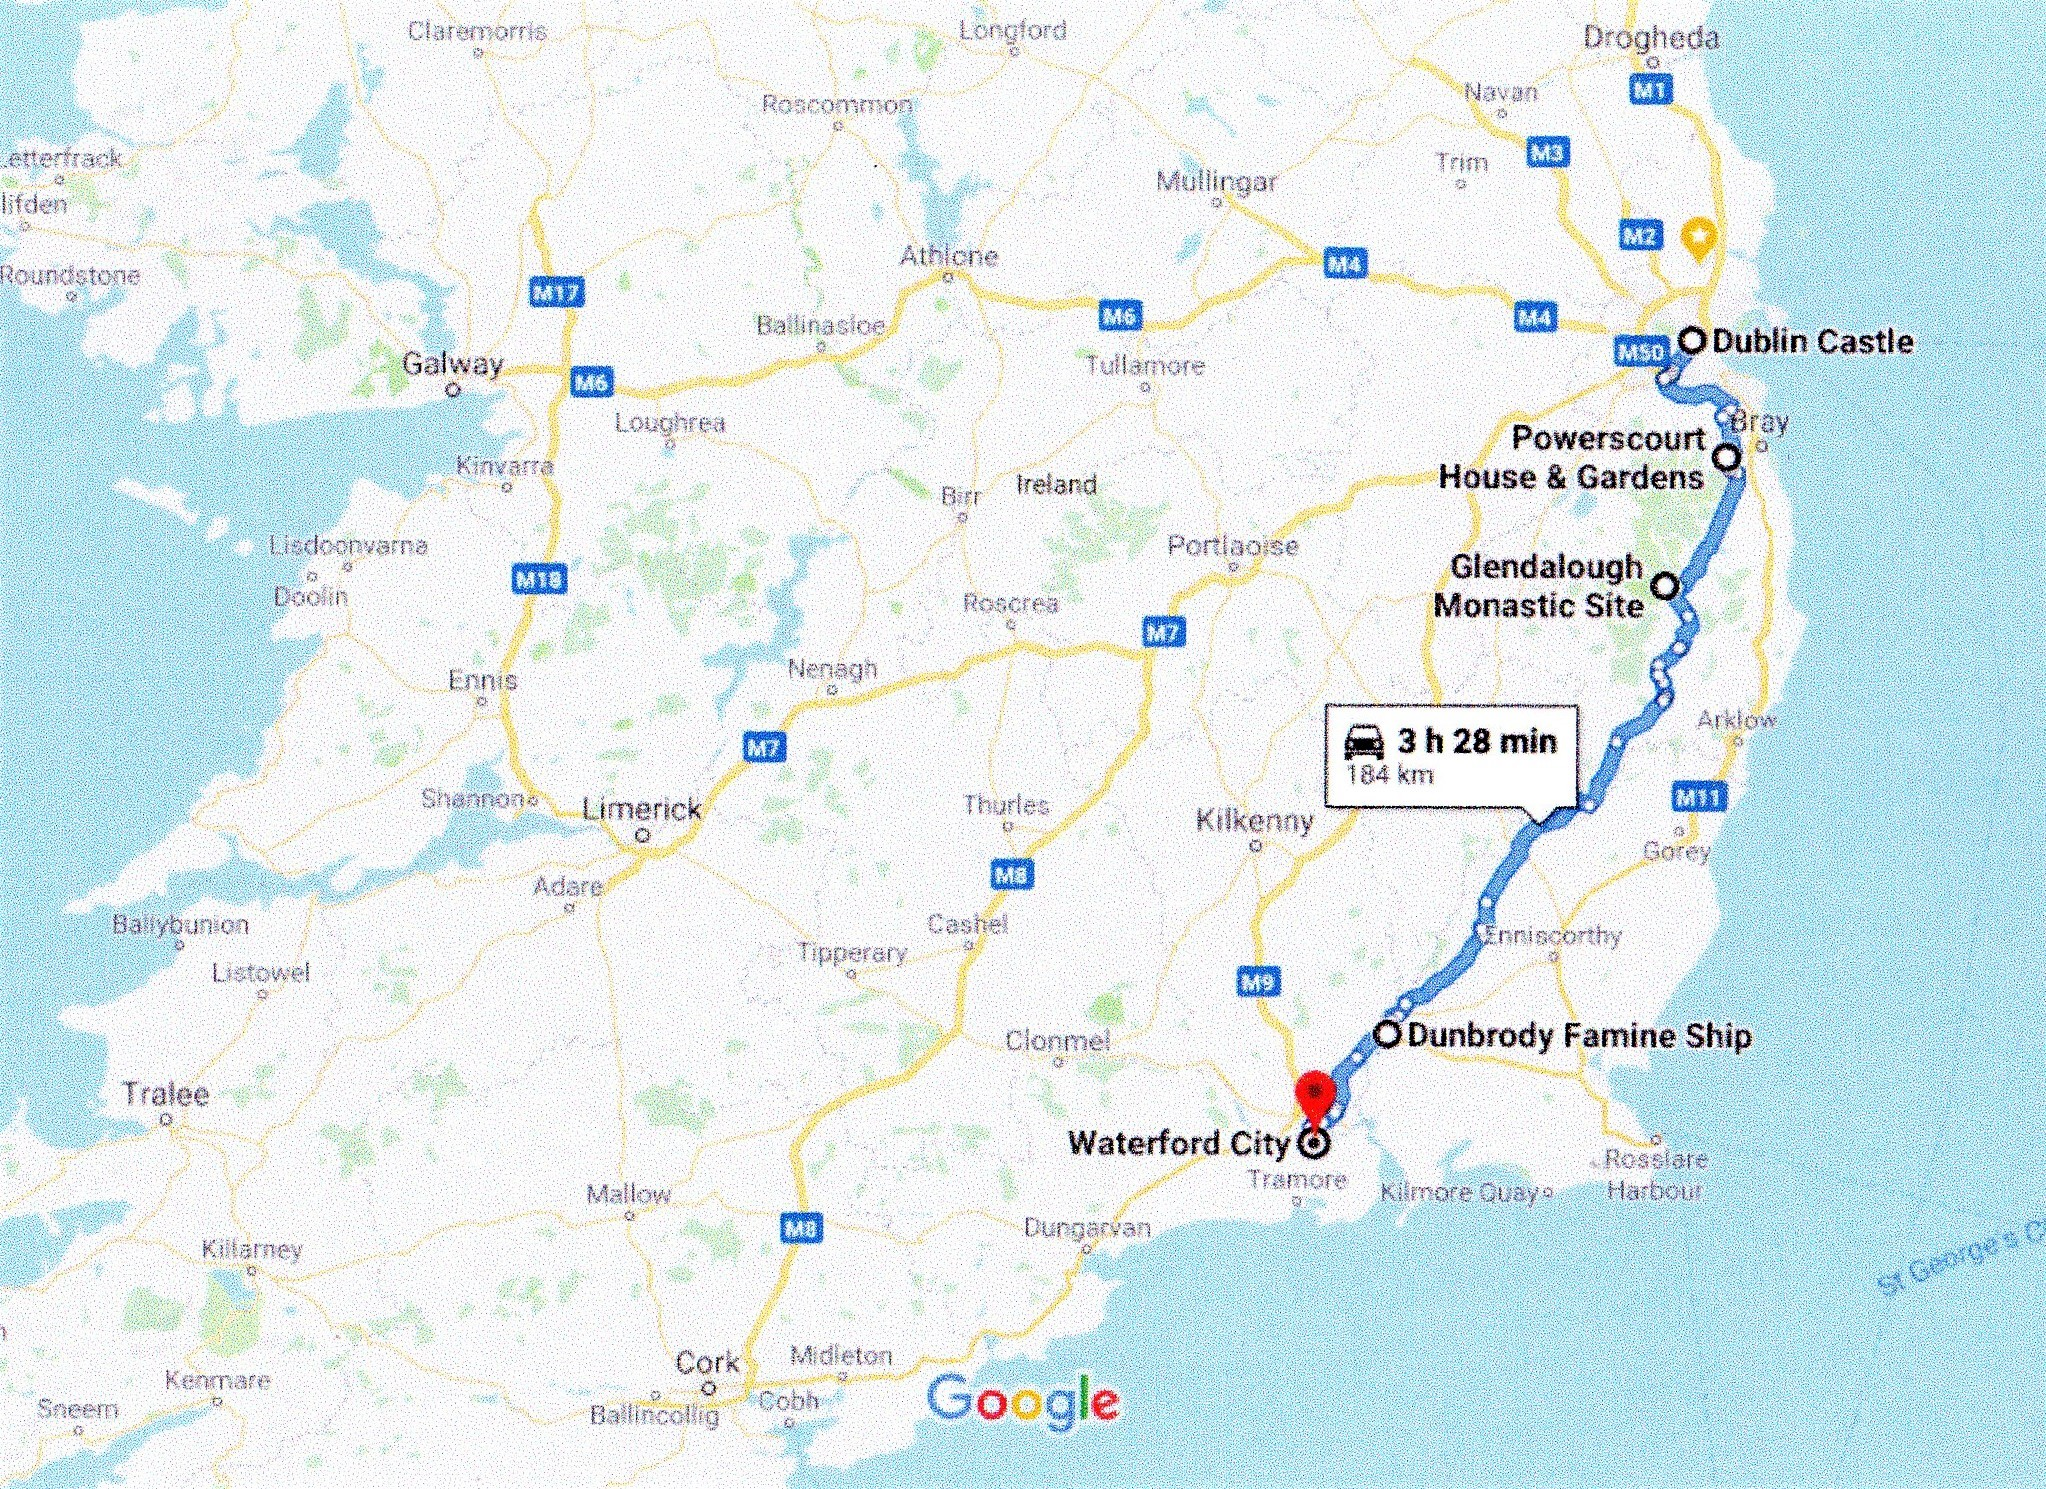 Google route map Dublin to Waterford via Glendalough